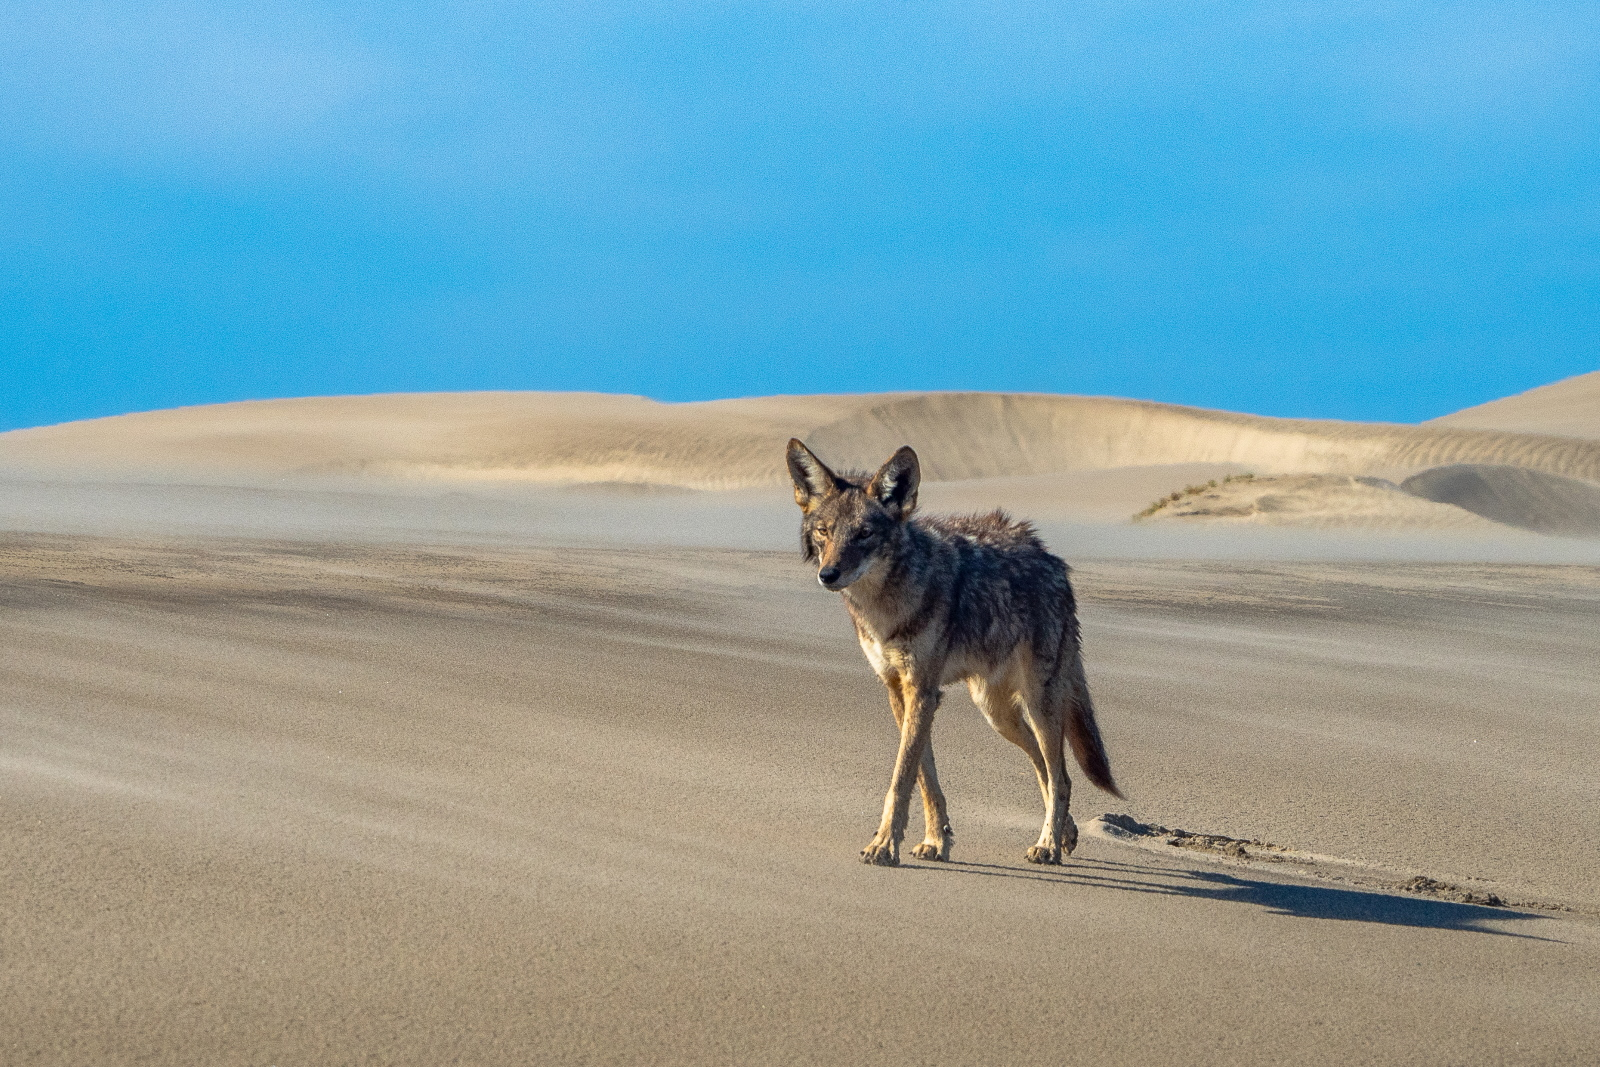 Coyote on dunes, Bahia Magdalena, Baja California Sur, Mexico